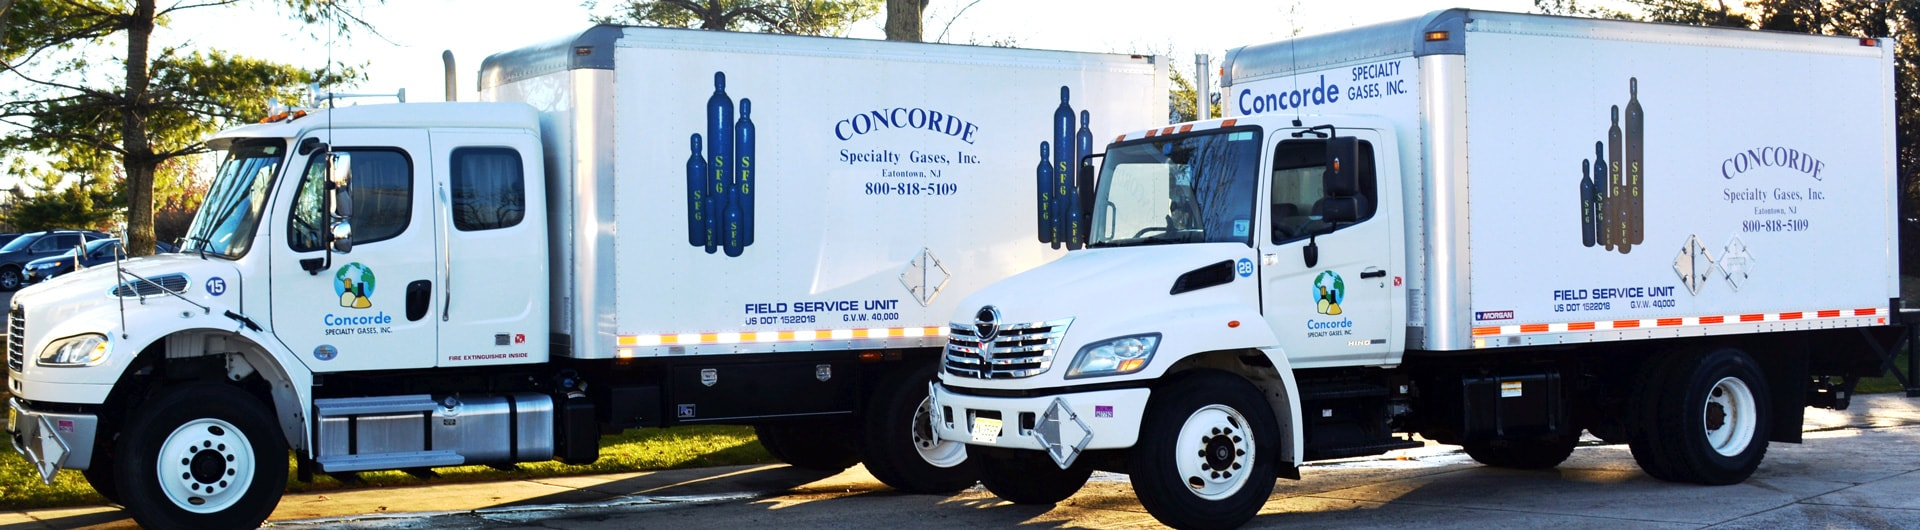 SF6 Gas global provider - Concorde Specialty Gases, Inc., 36 Eaton Road, Eatontown, NJ 07724 USA